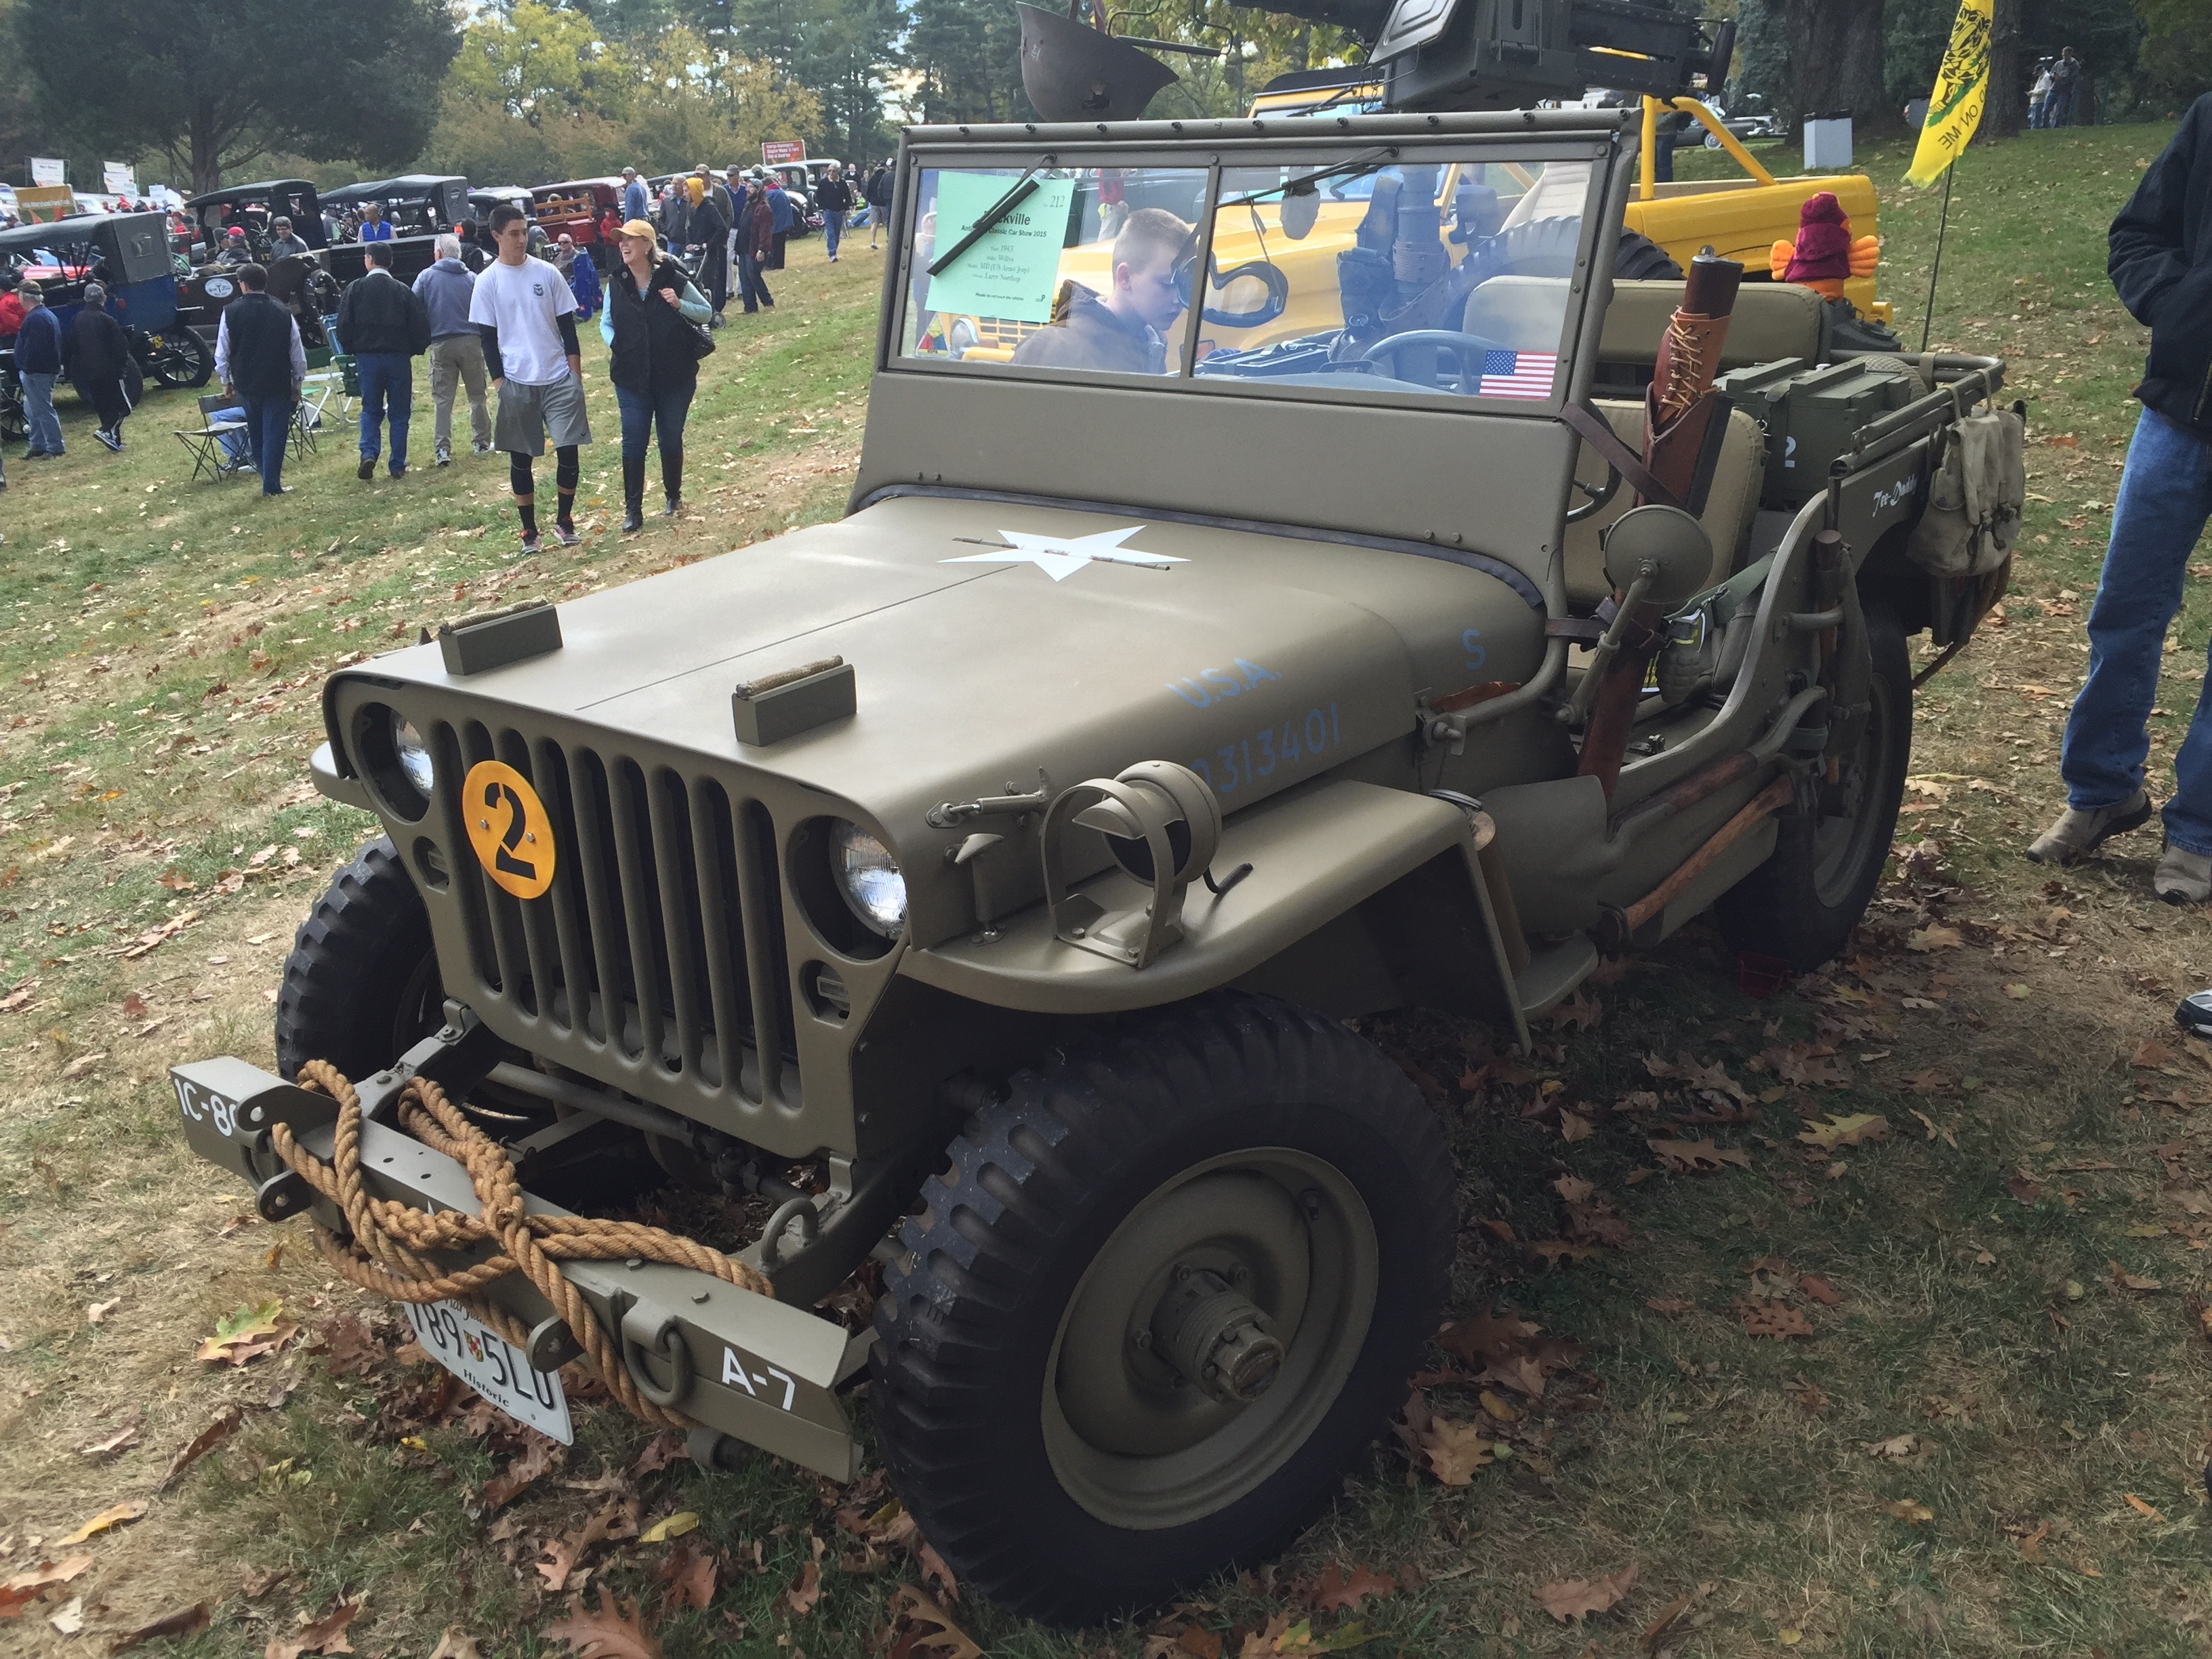 File 1943 Willys MB US Army Jeep at 2015 Rockville Show 2of3